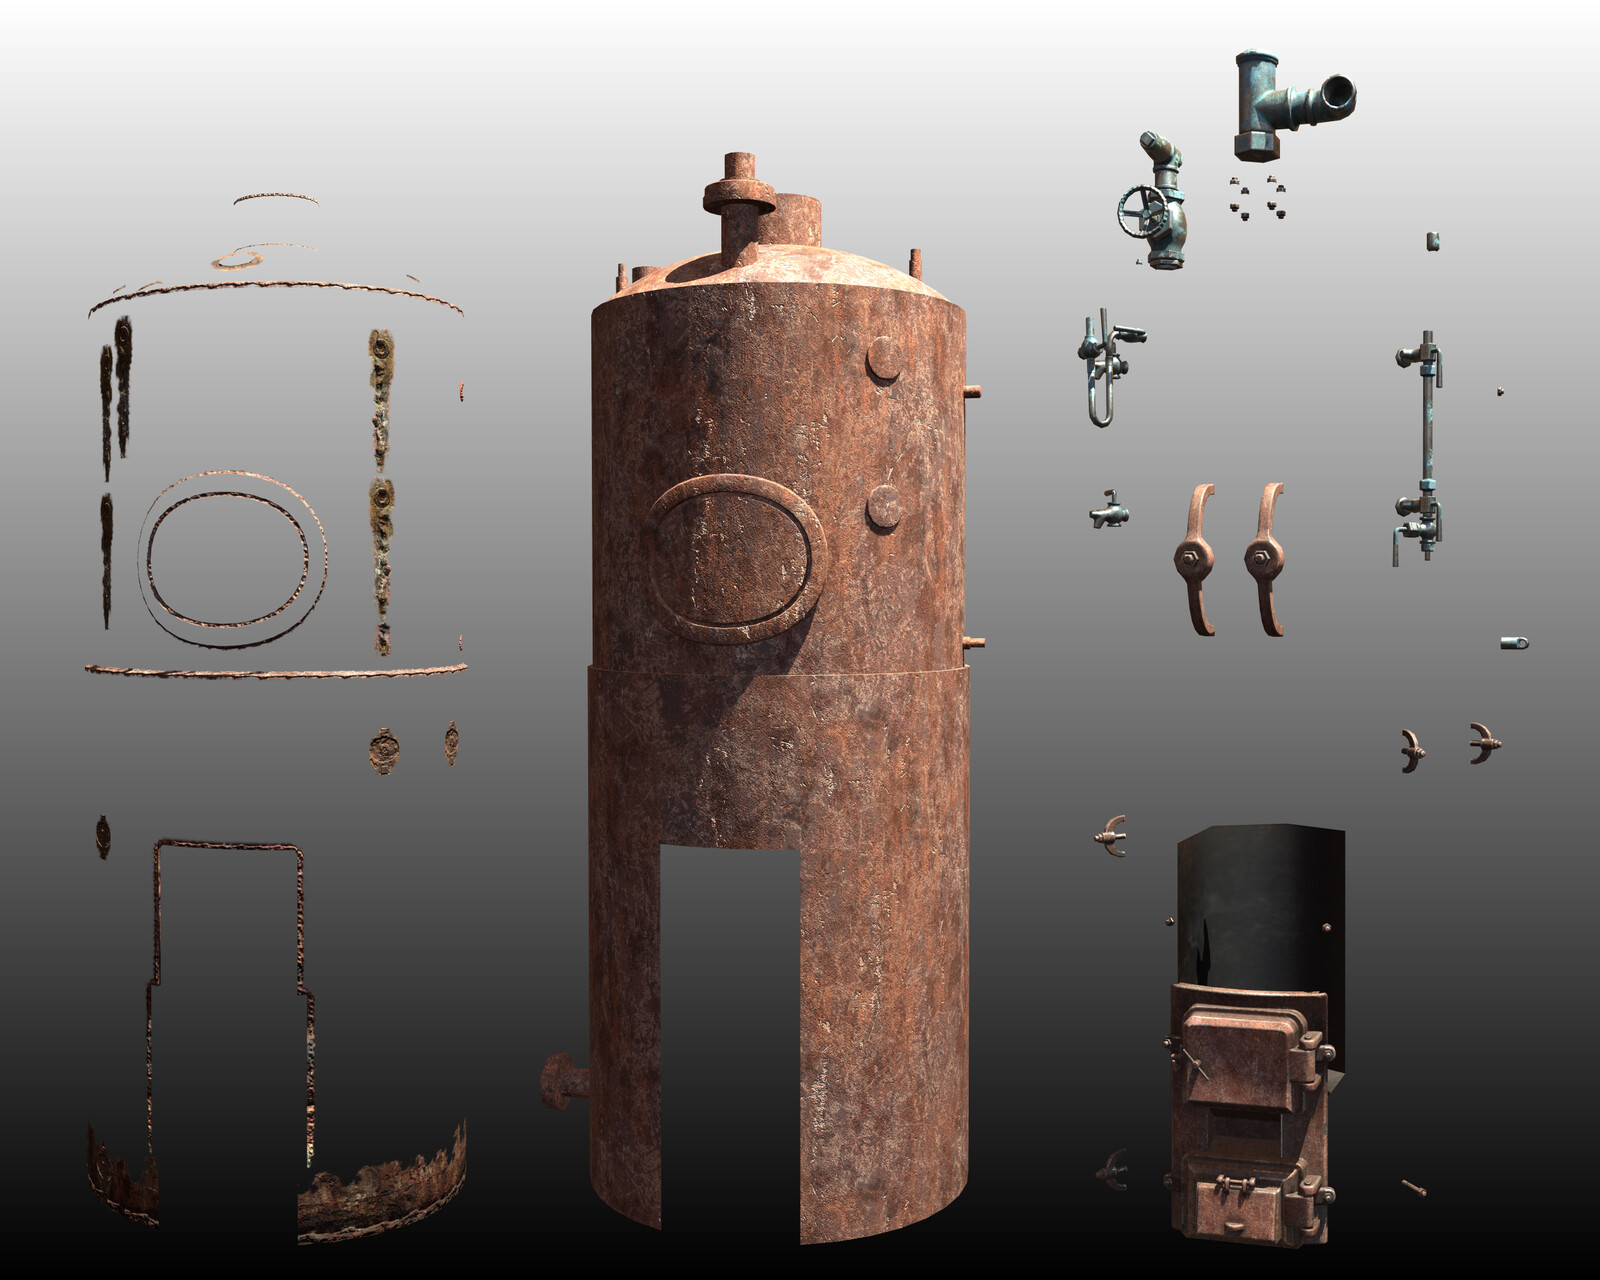 The model is 2.5 meter high. It has 1024 pix/meter texeleration. It has 3 materials in a spec/gloss workflow: - Tiled 1024x1024 mat for the whole hull created by me at Substance Designer; - Baked 1024x102 mat for better detail visualization; - One 512x512